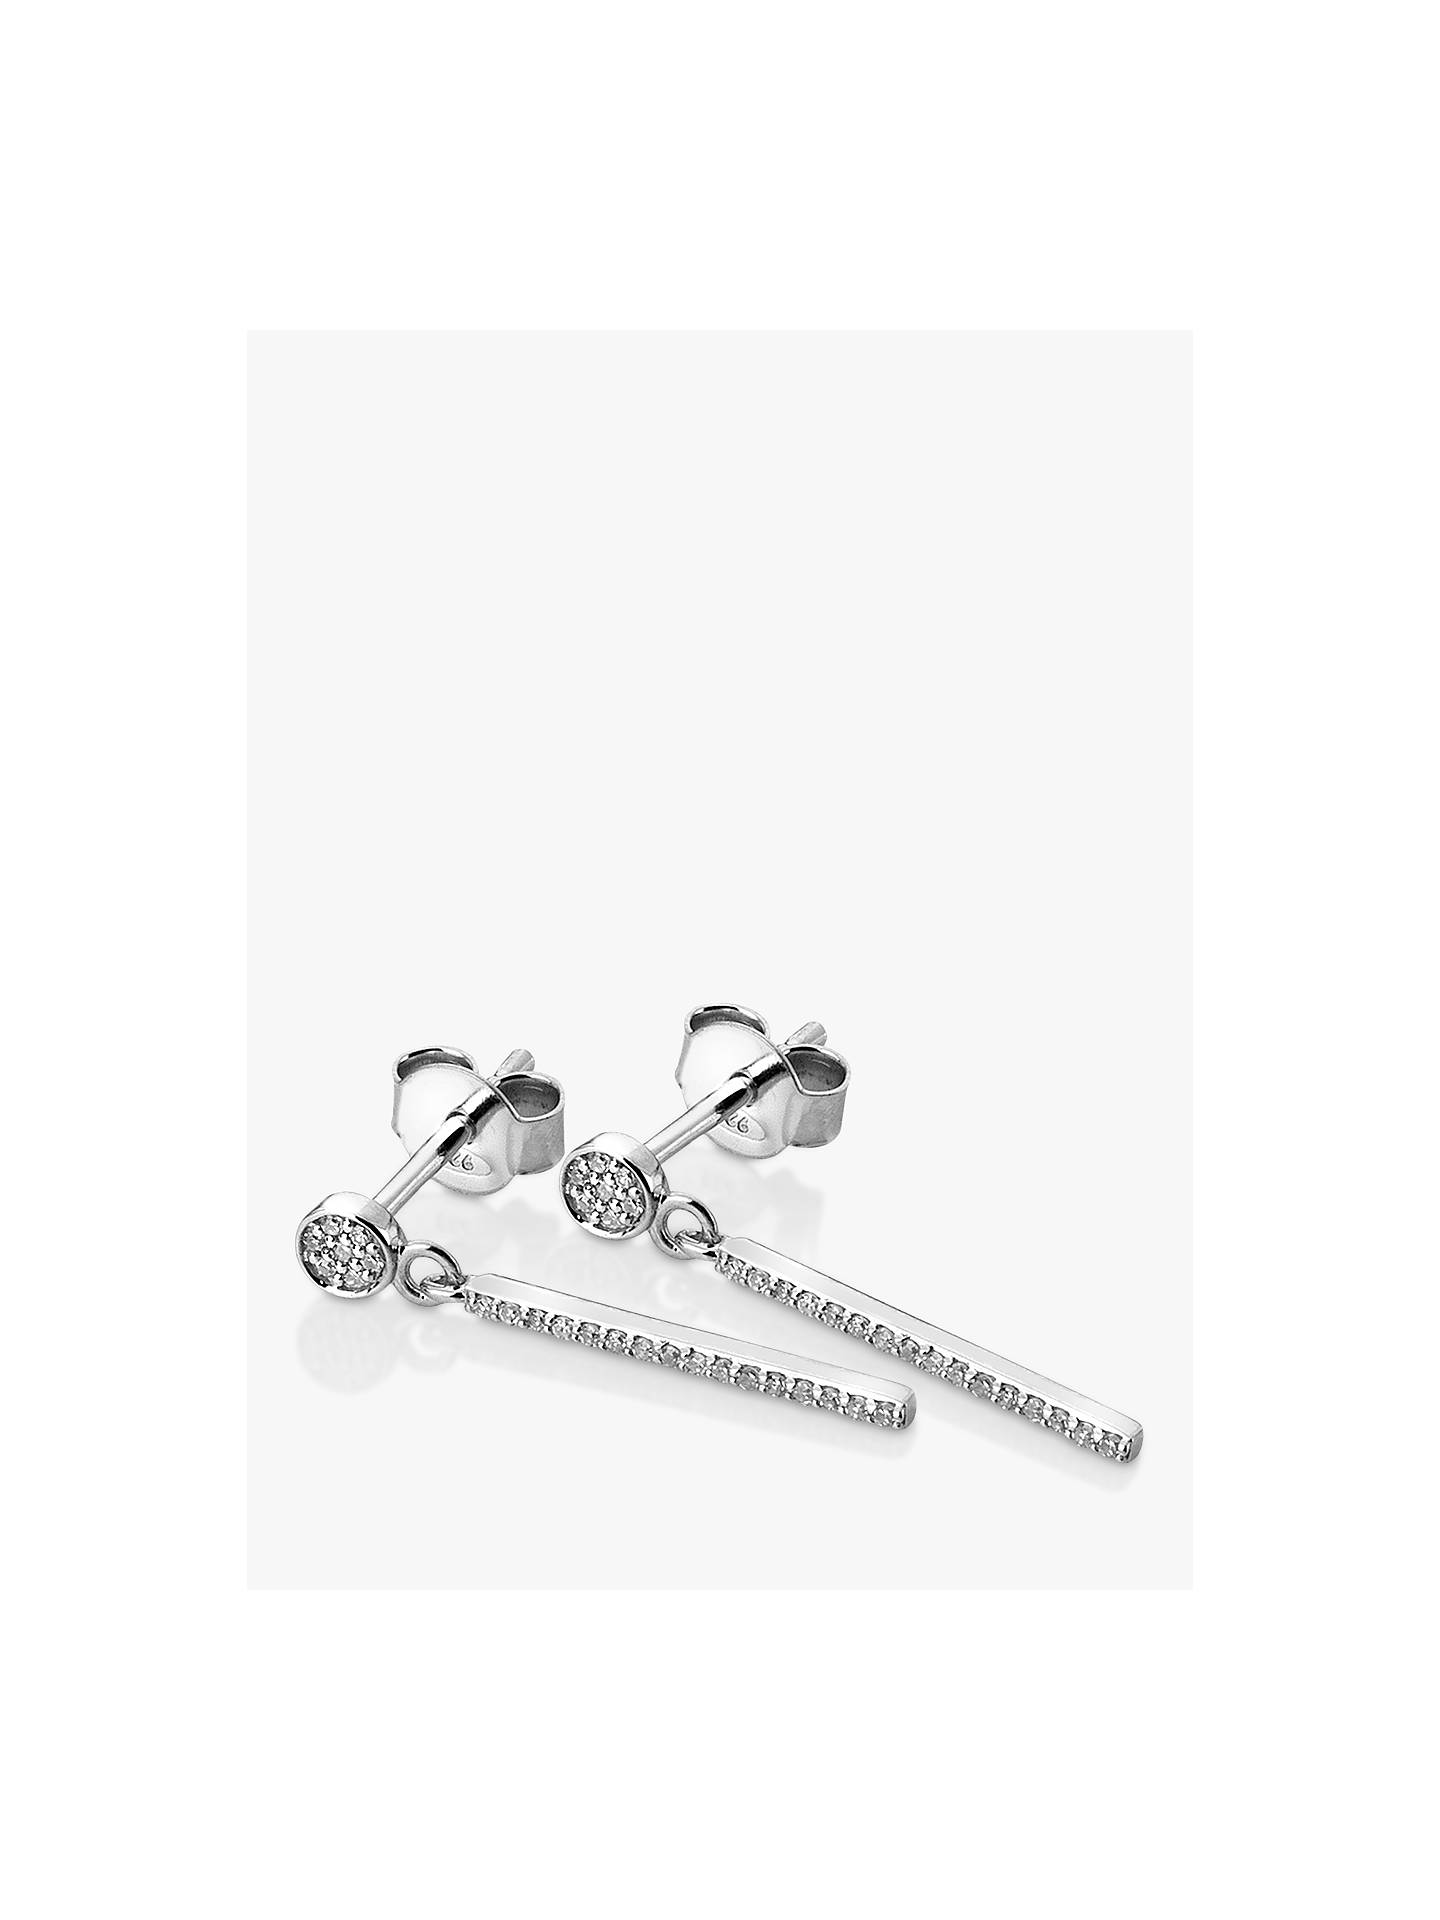 7aec297e3d0 Buy Hot Diamonds Tranquillity 9ct White Gold Diamond Drop Earrings Online  at johnlewis.com ...